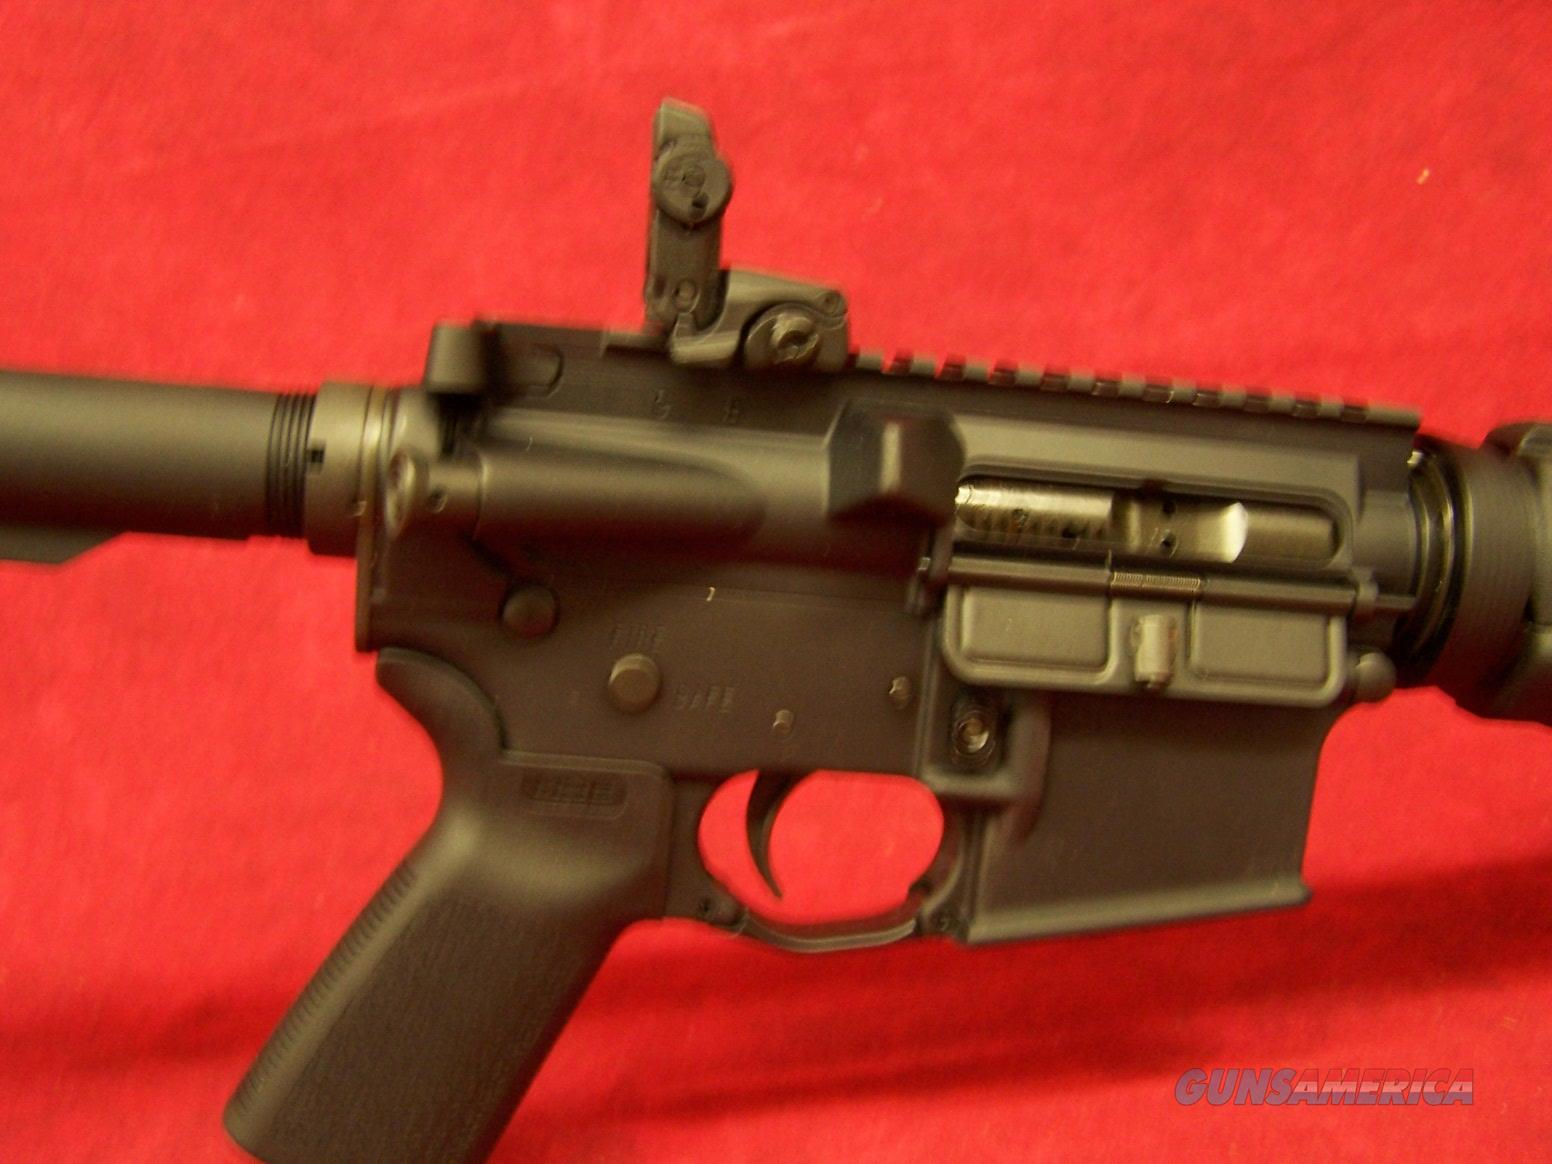 "Colt M4 Carbine 5.56mm 16"" LE6920MP-B with upgraded JP trigger  Guns > Rifles > Colt Military/Tactical Rifles"